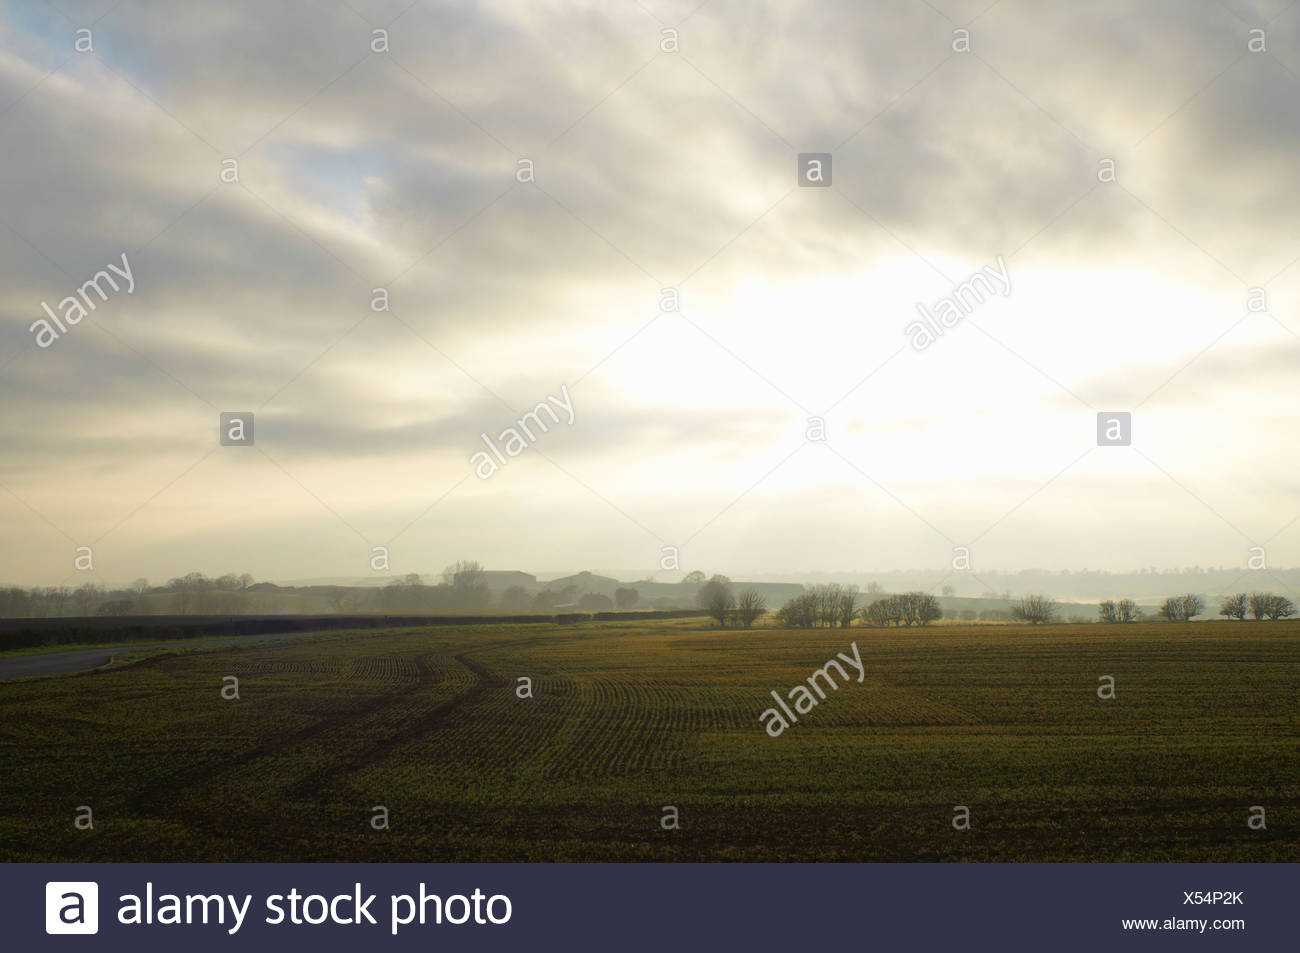 Cloudy sky over rural landscape - Stock Image